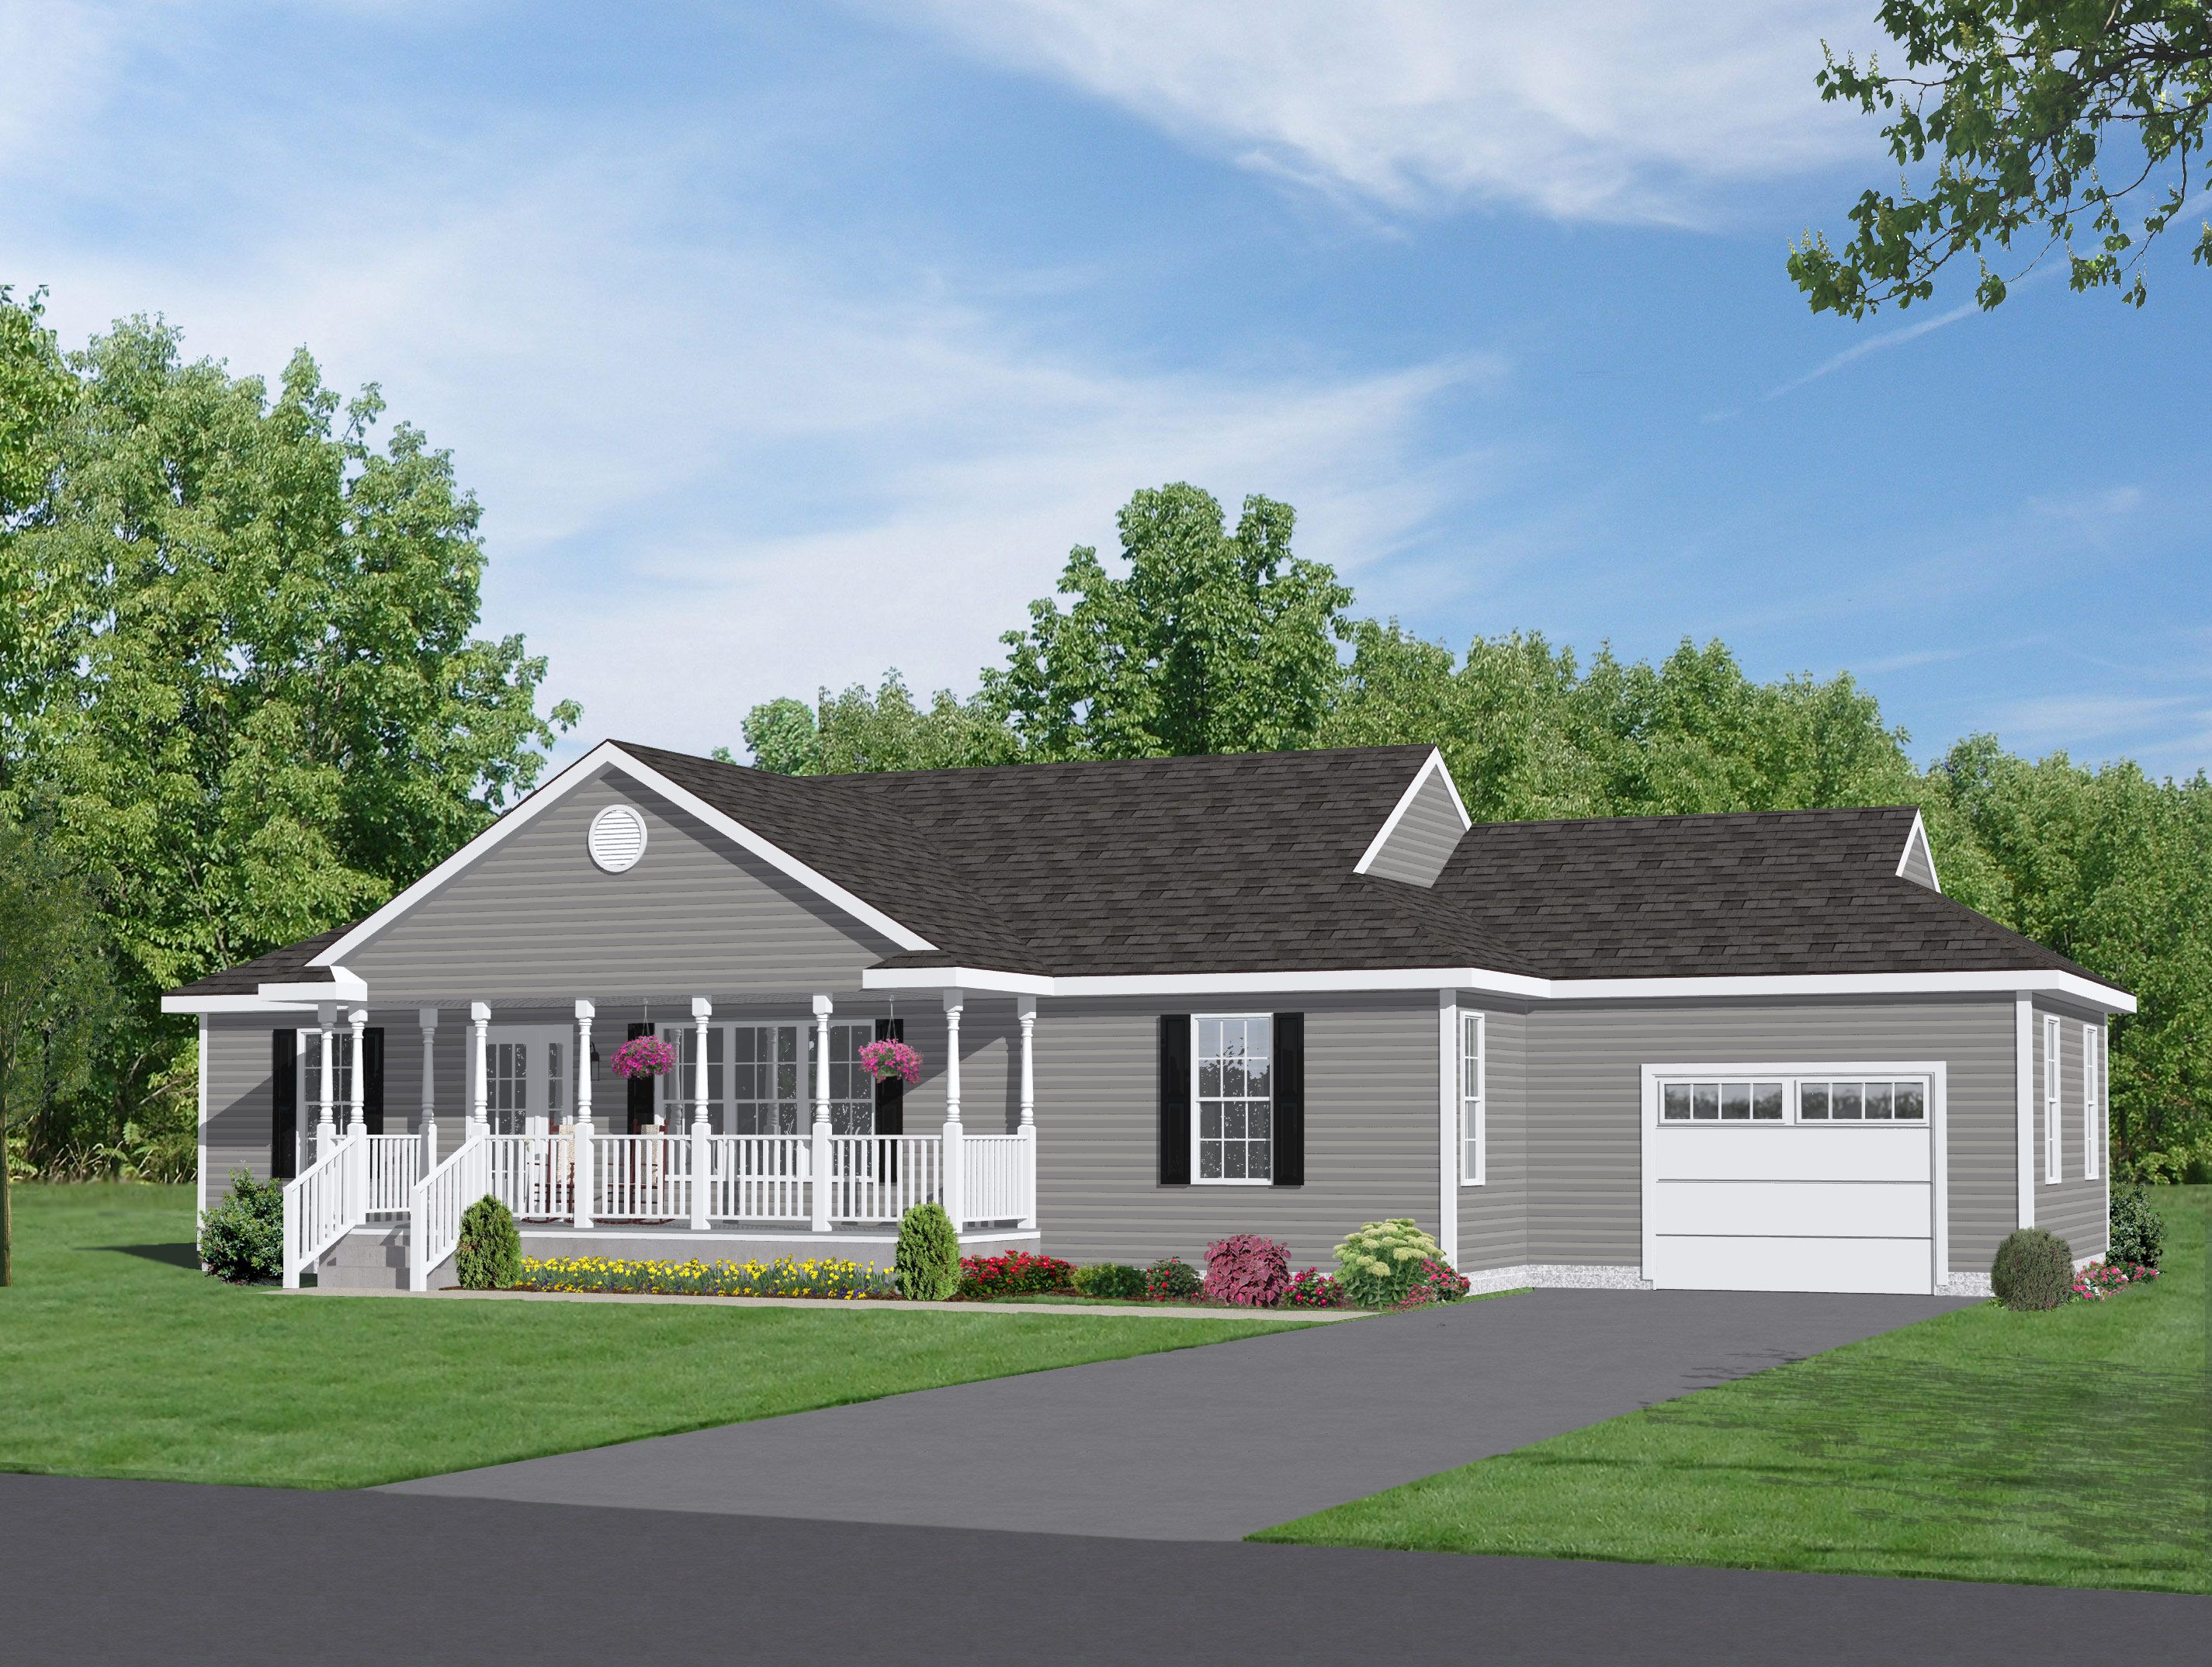 Rancher plans rancher plans two story house plans ranch for 2 story basement house plans